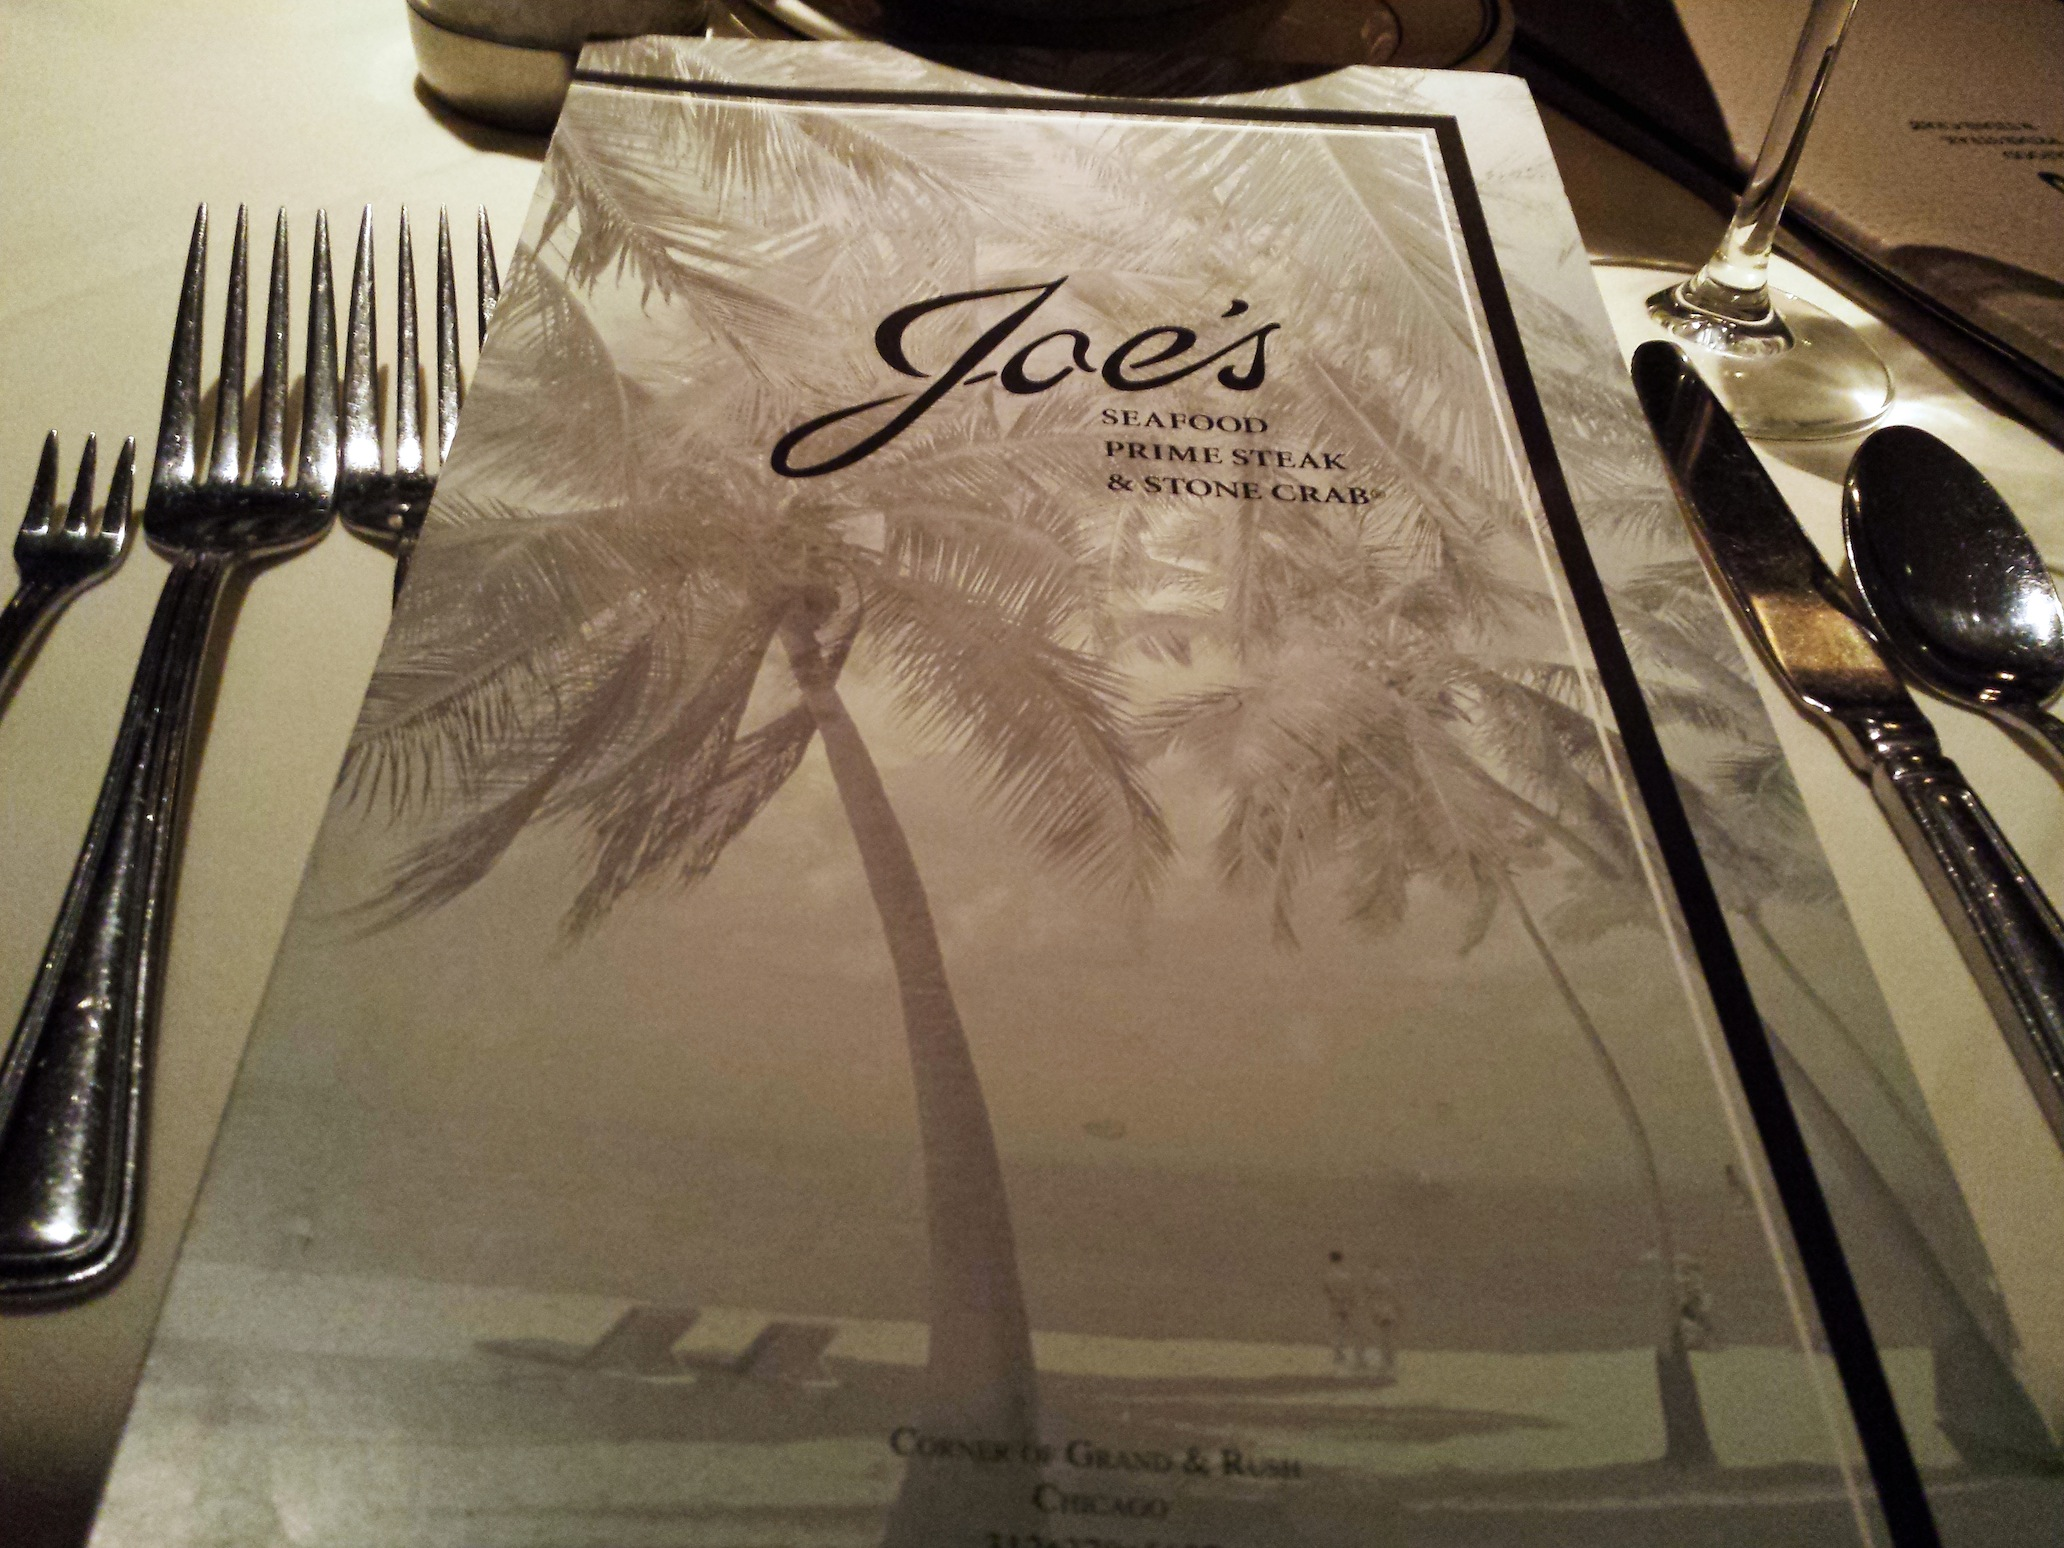 Joe's Seafood Prime Steak & Stone Crab